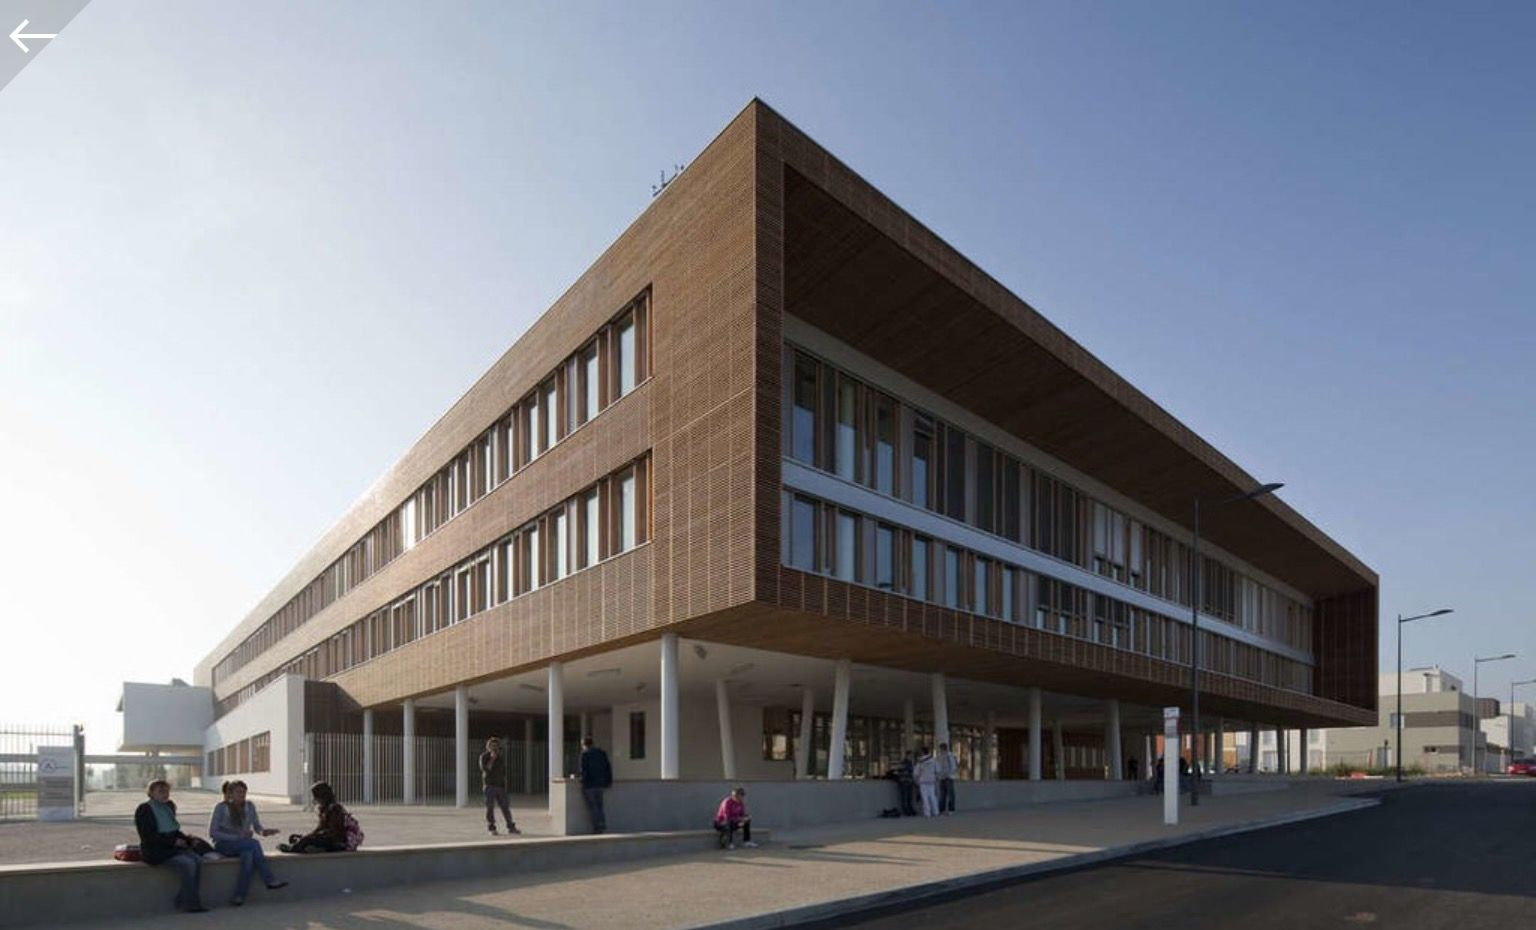 Modern Architecture France louis pasteur high school in france | modern architecture